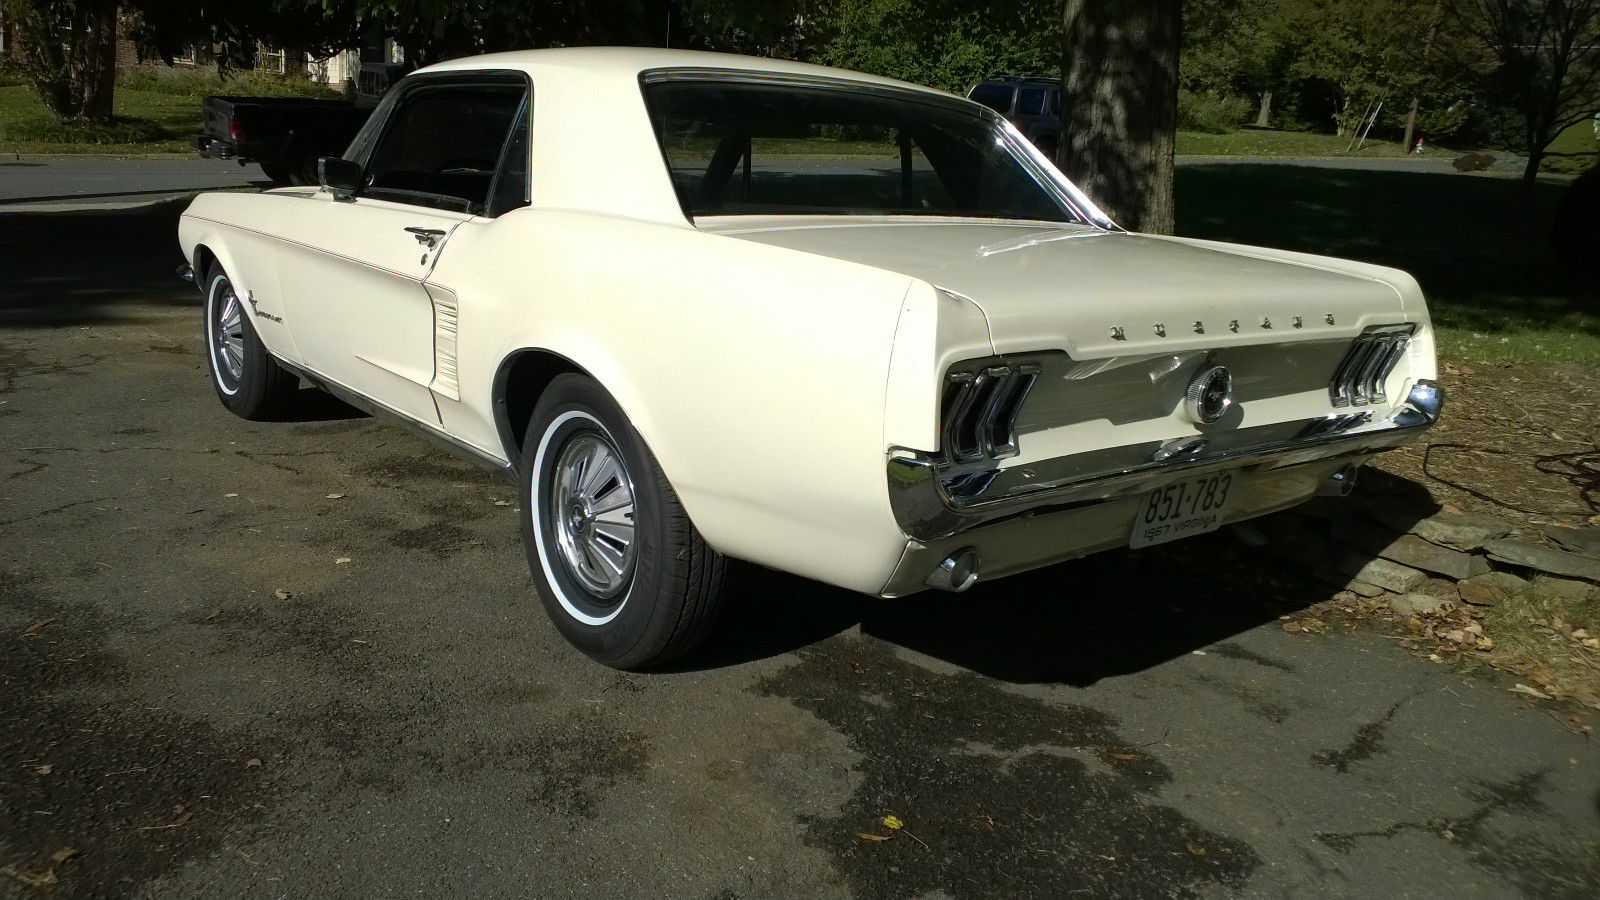 1967 ford mustang coupe very good condition 6 cylinder manual driven weekly